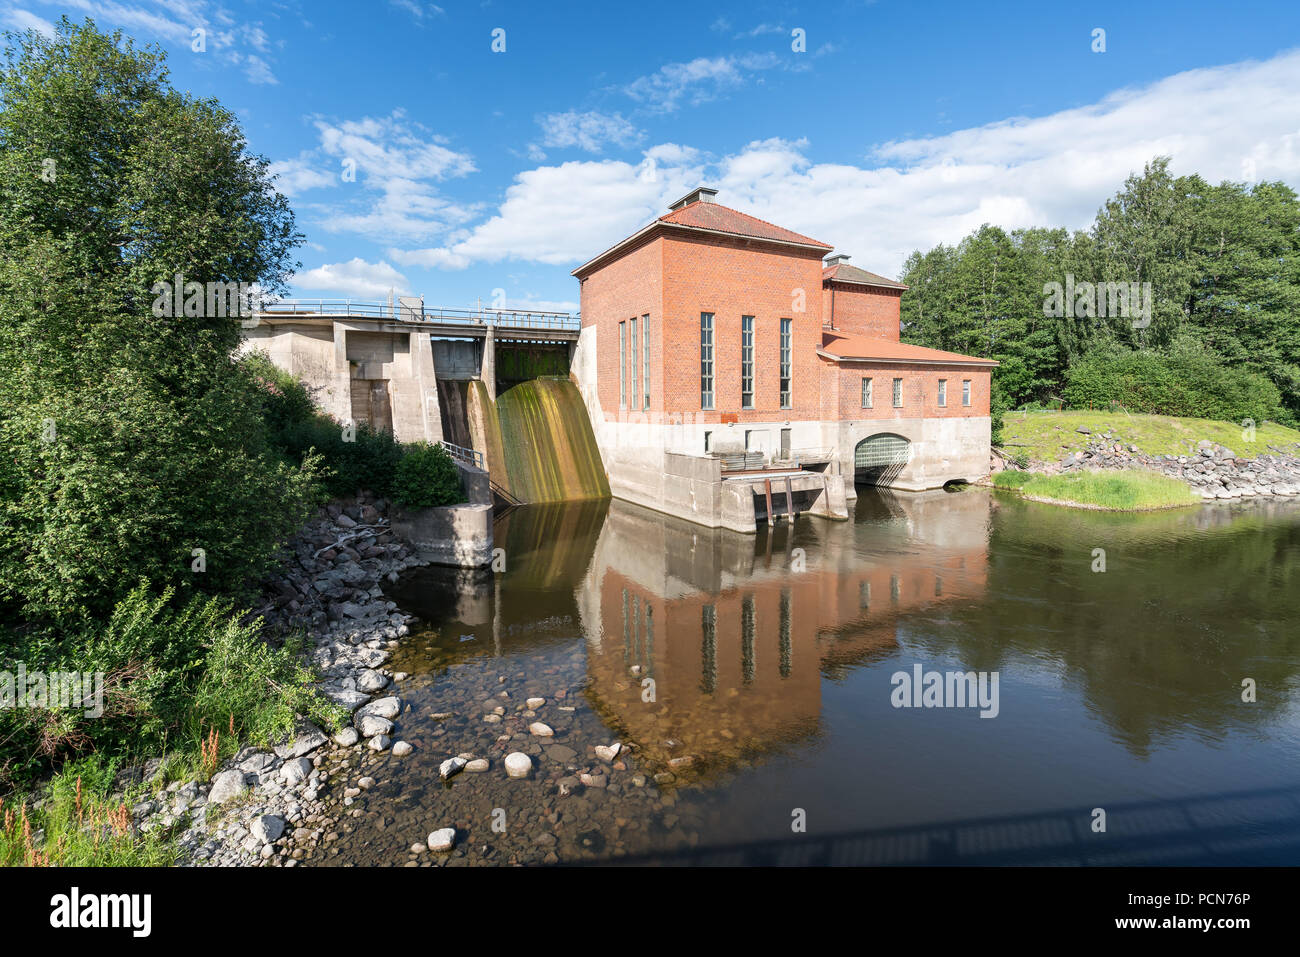 Old hydroelectric power plant in Mustio, Raasepori, Finland - Stock Image